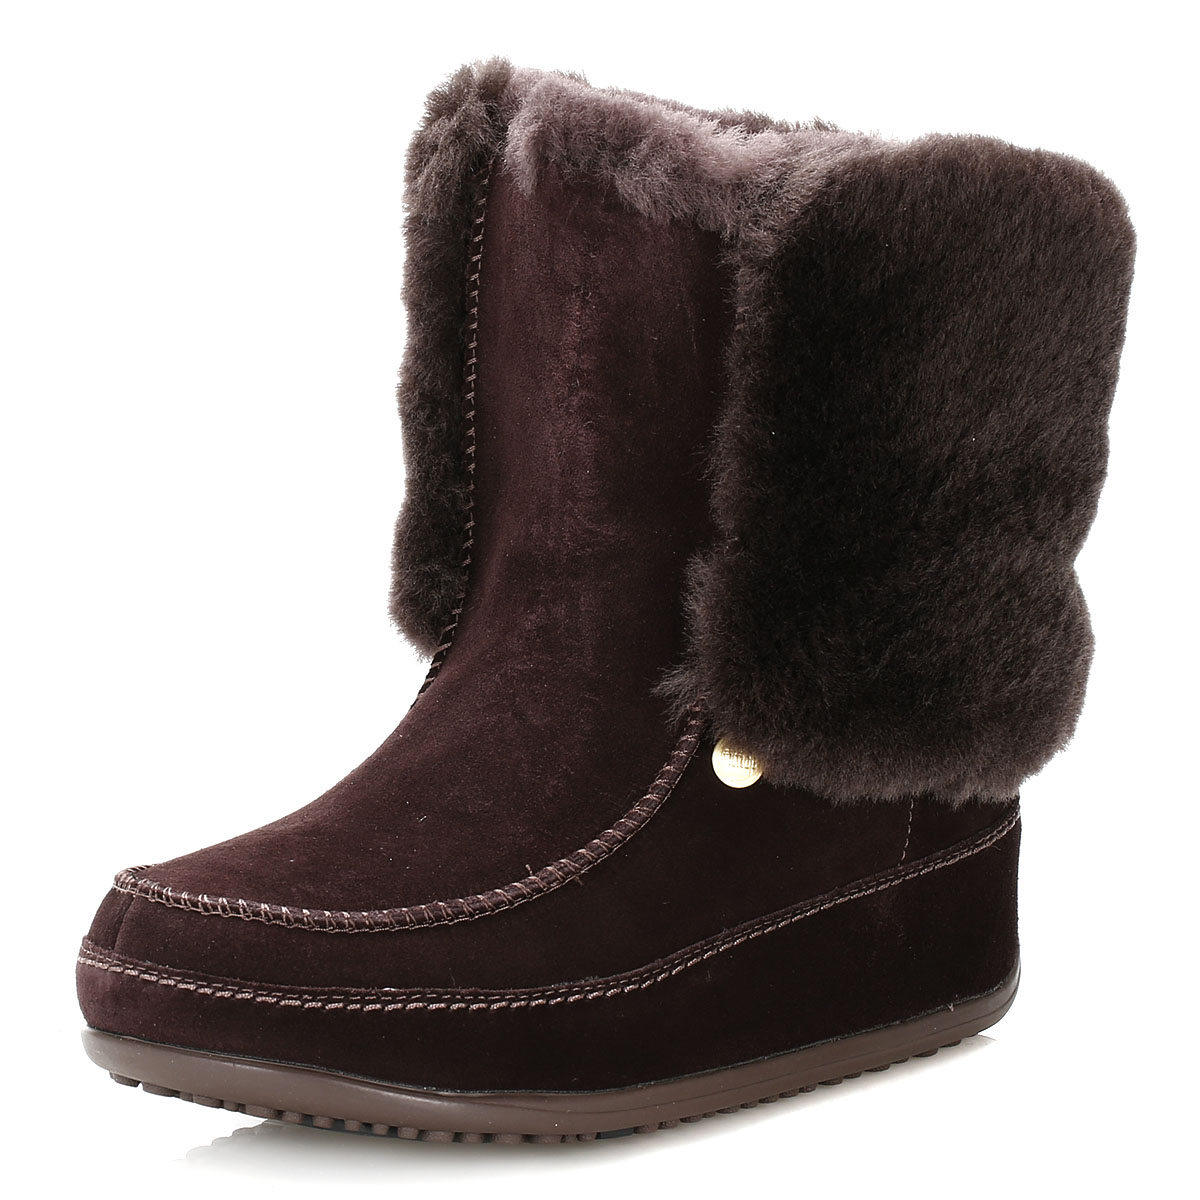 fitflop womens brown suede boots supercuff mukluk